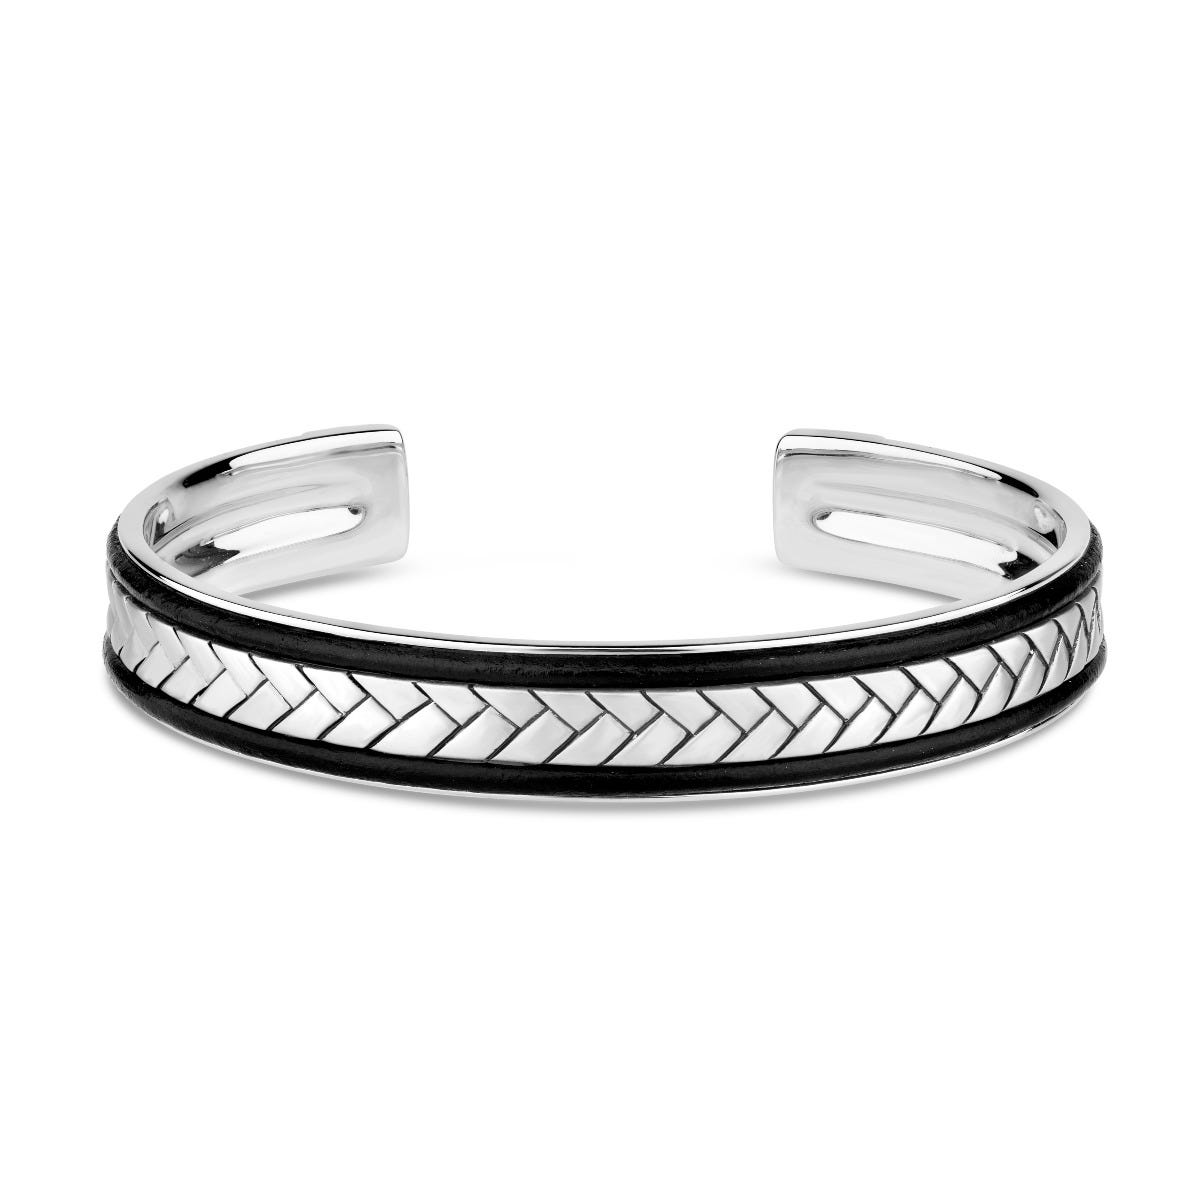 Gents Sterling Silver & Black Plaited Leather Cuff